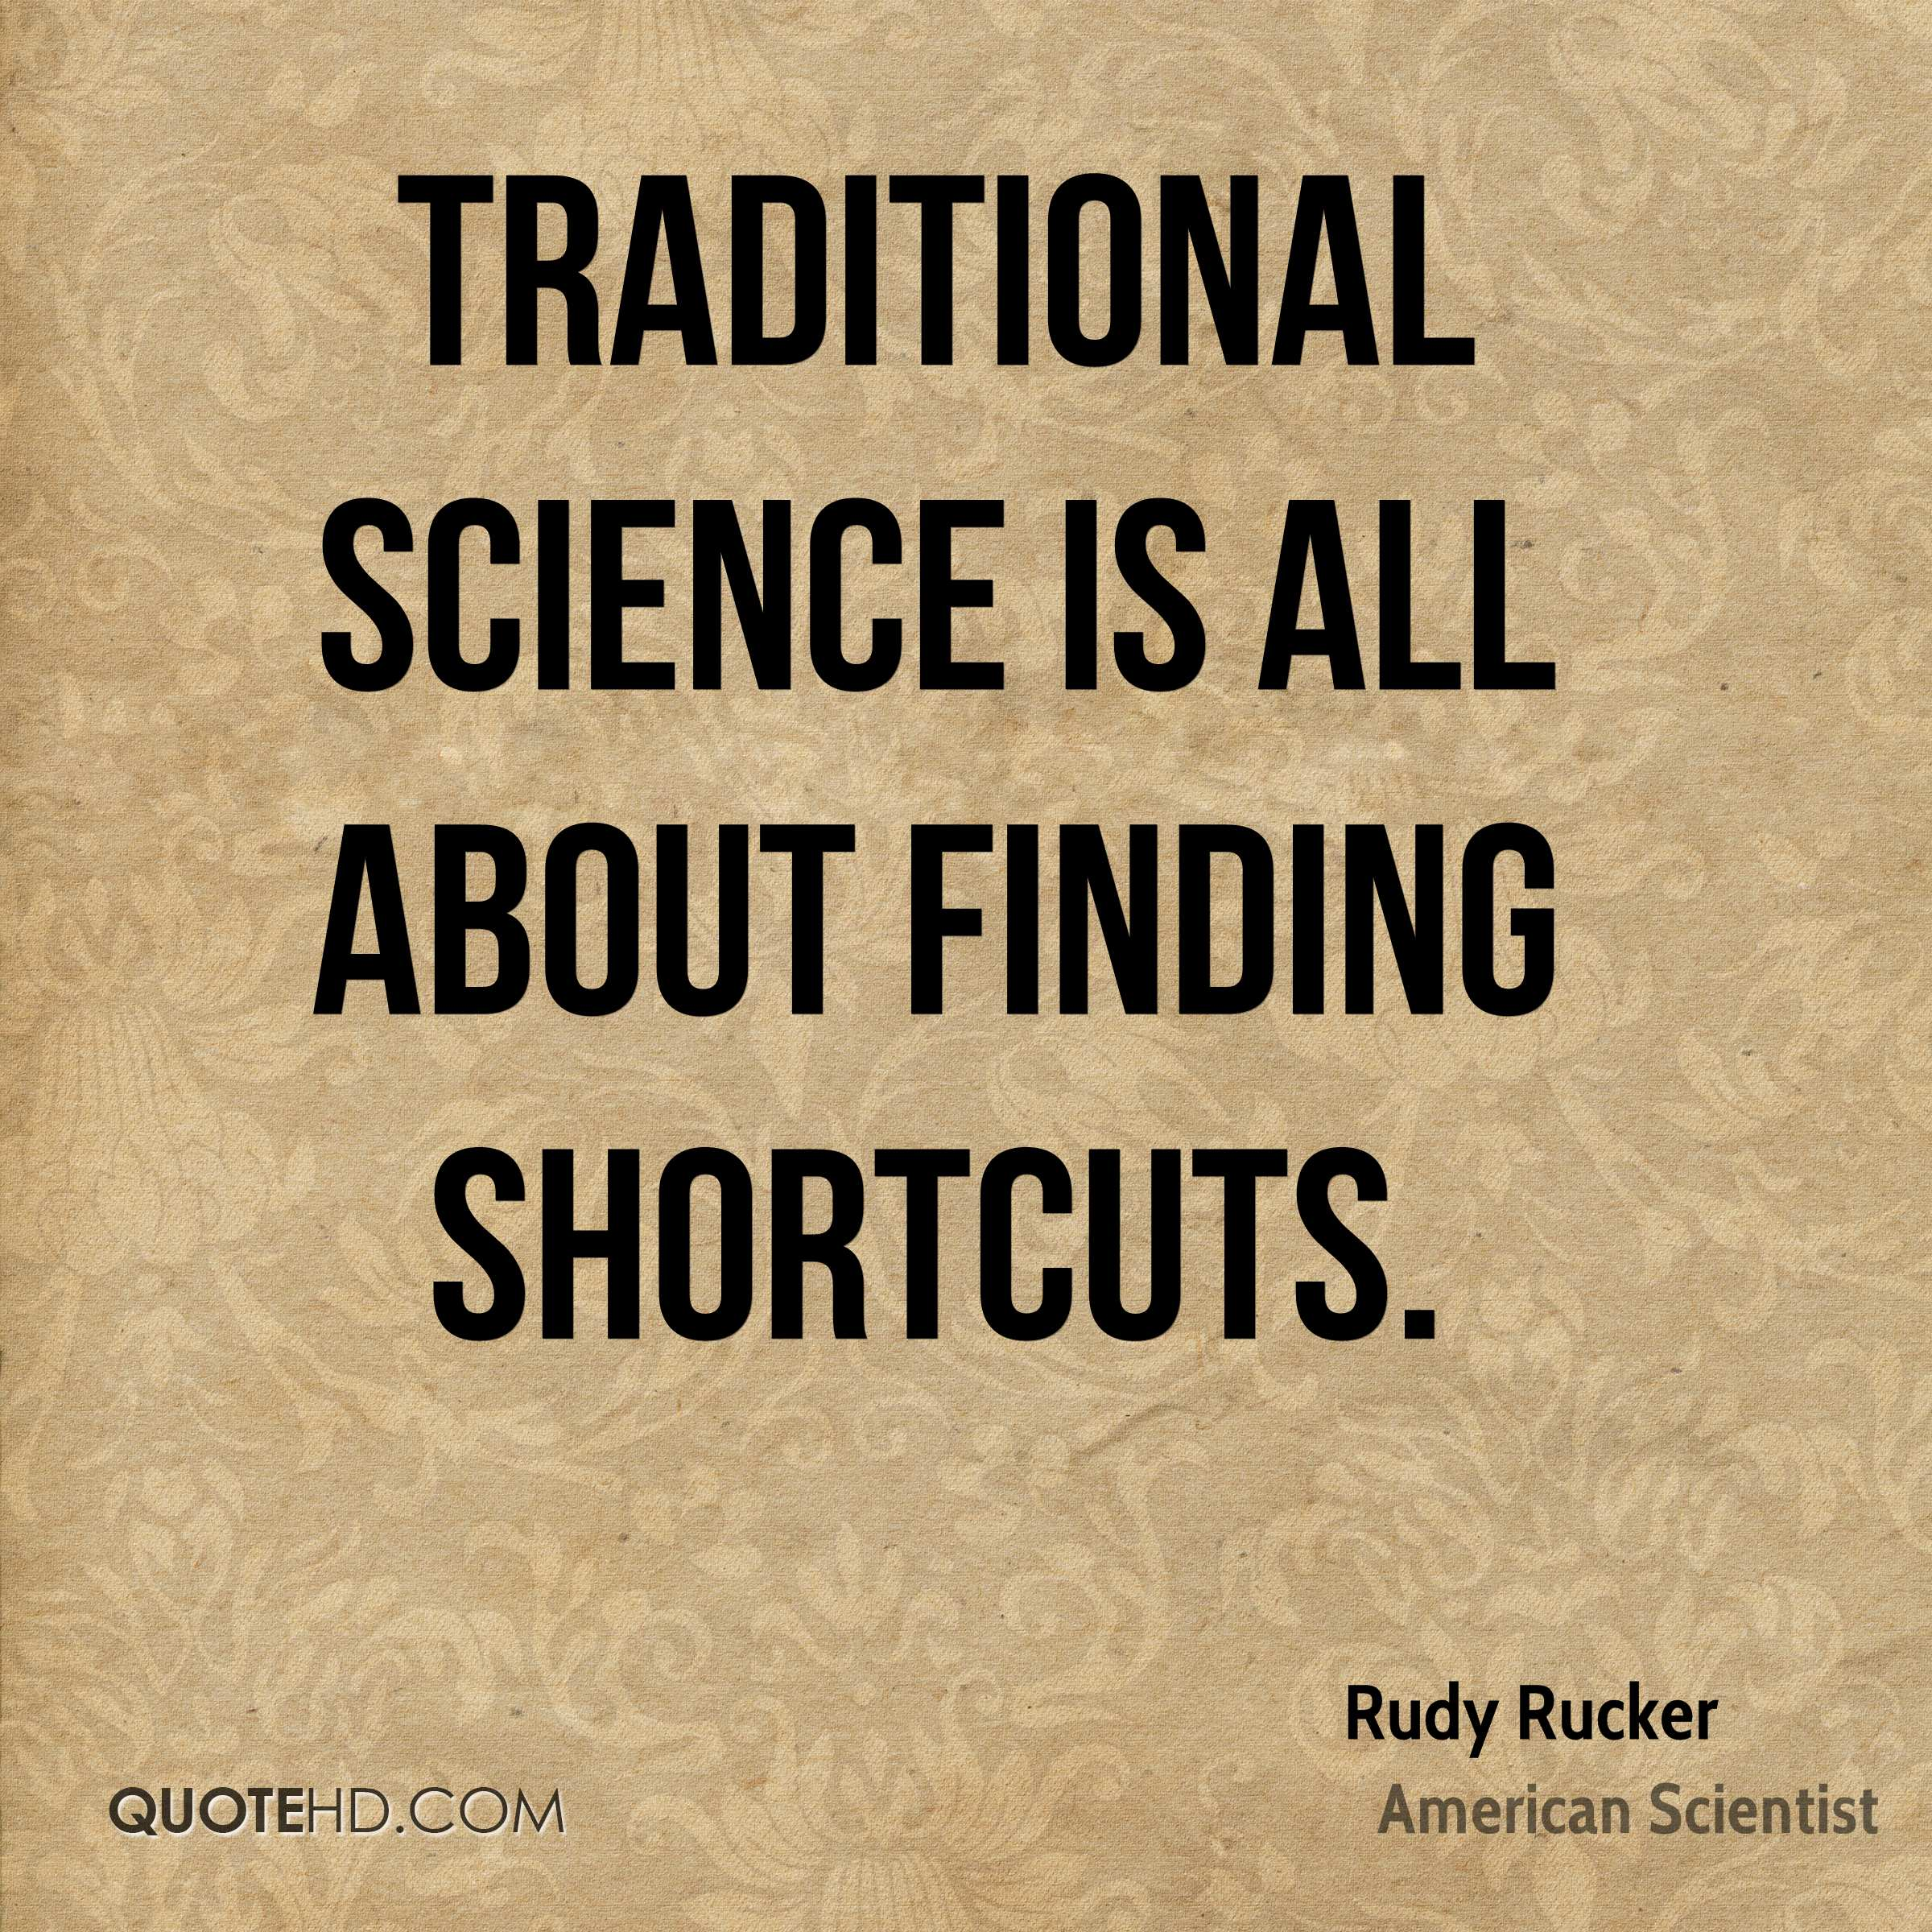 Traditional science is all about finding shortcuts.